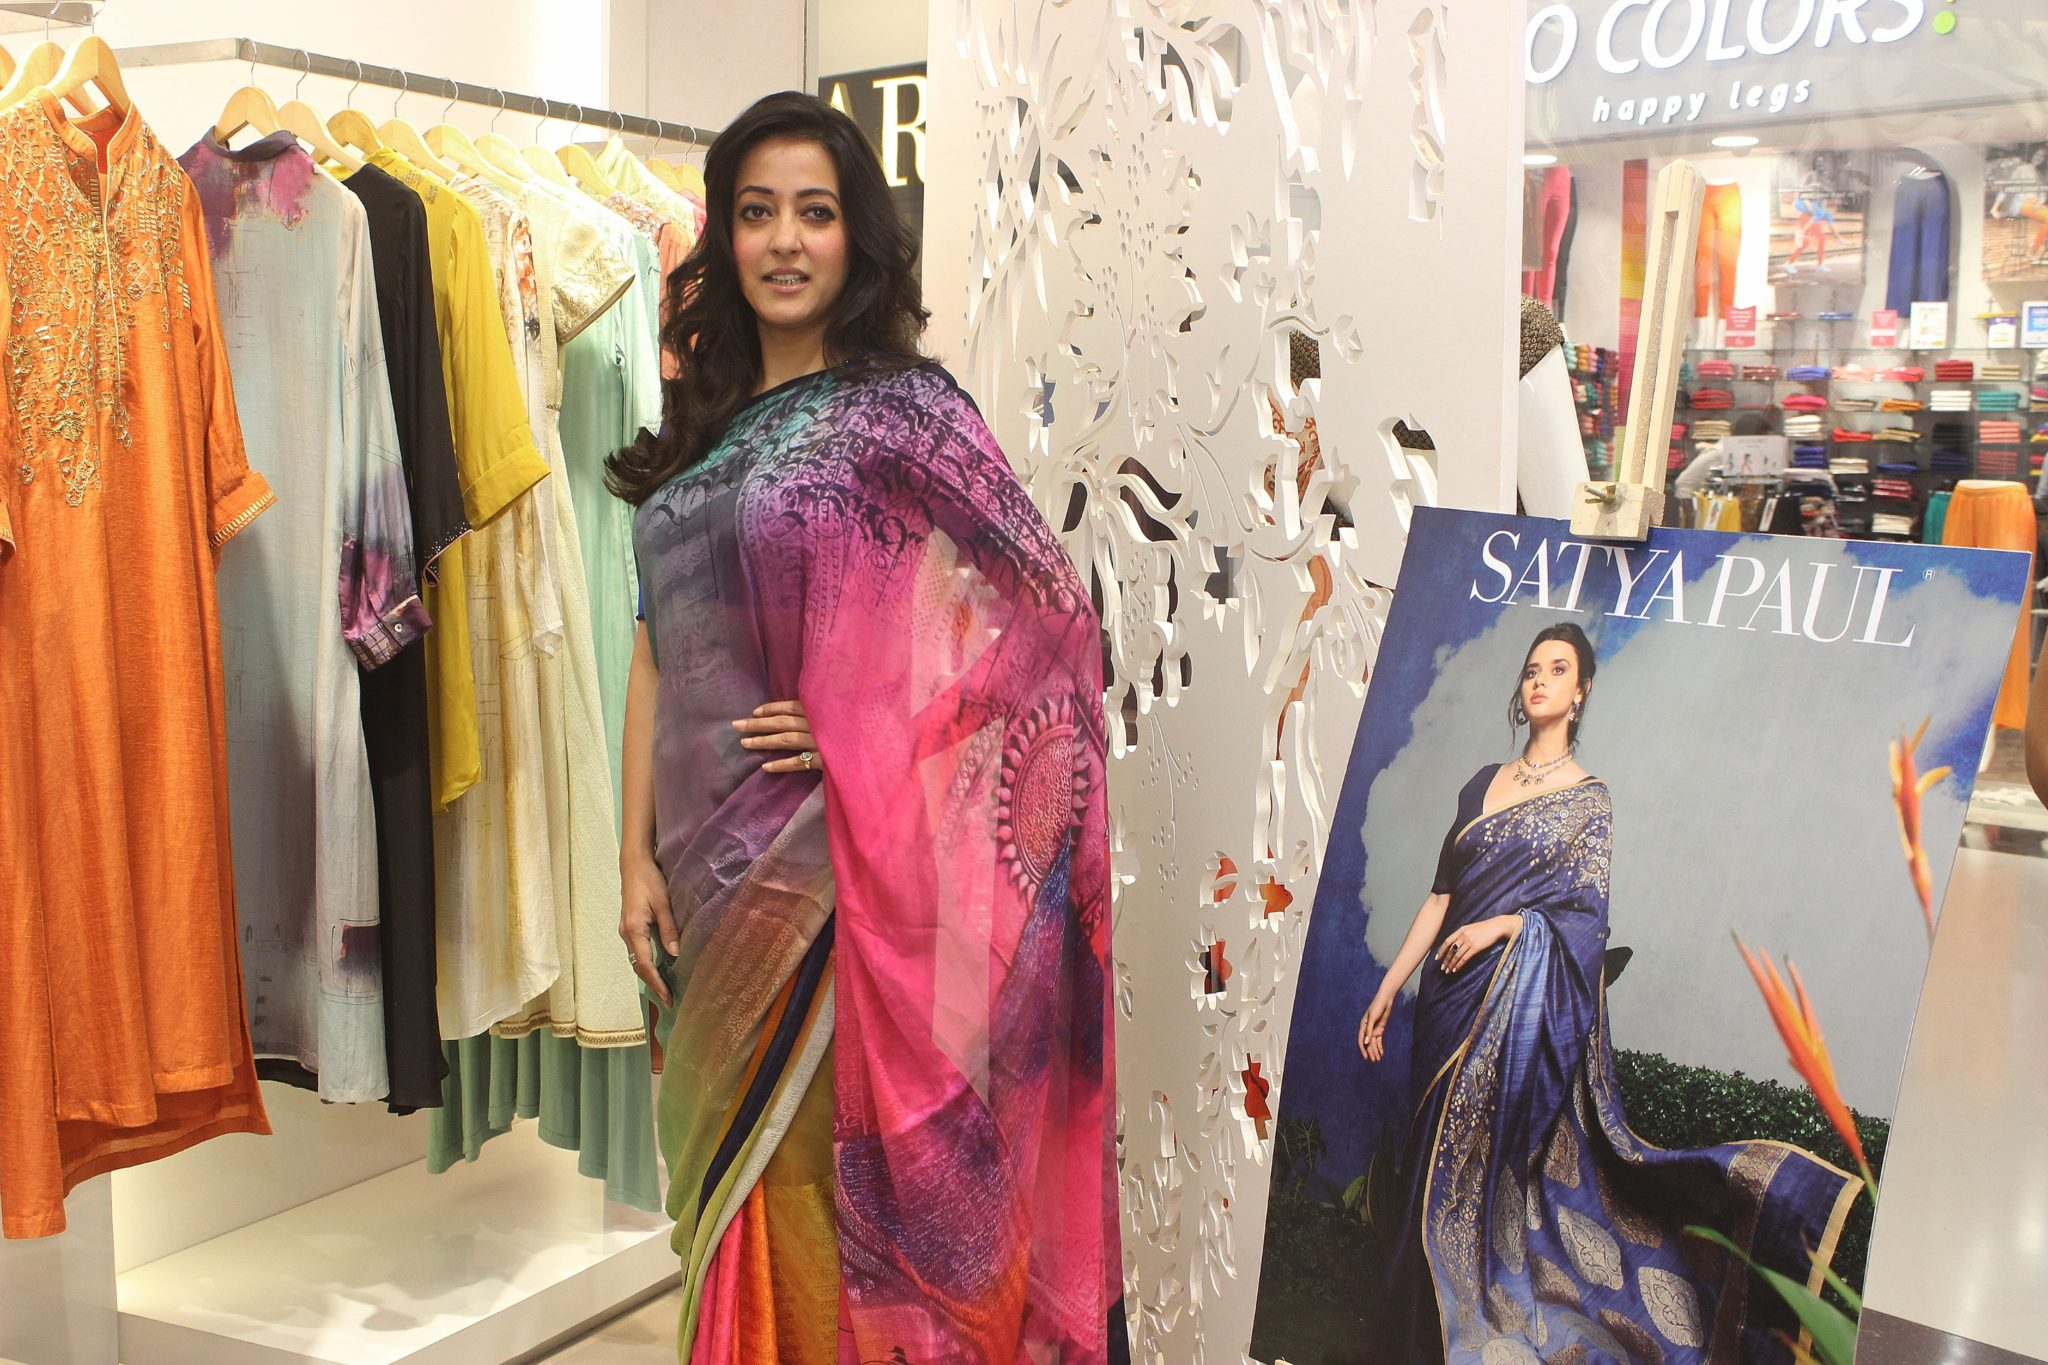 """Satya Paul's for the celebration of their second store in Kolkata"""""""